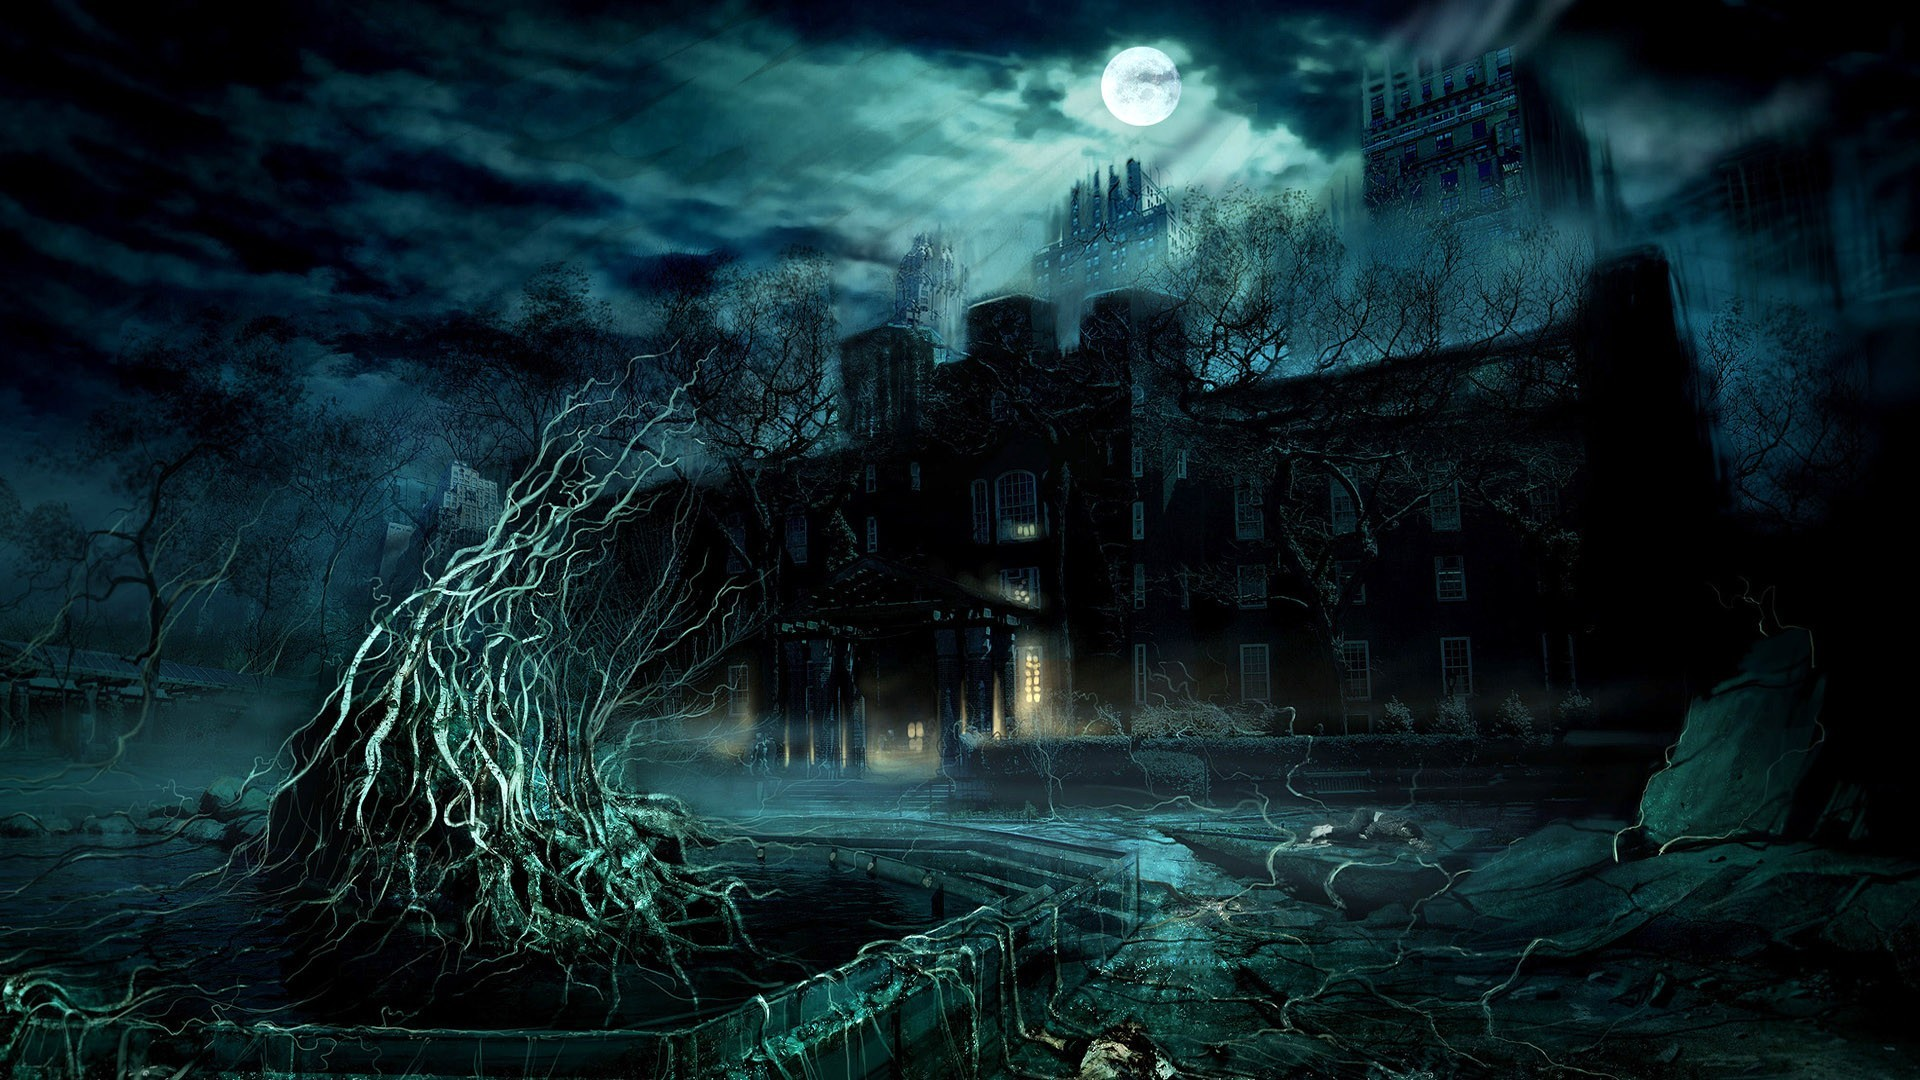 1920x1080 Gothic Wallpaper For Home 21 Cool Wallpaper